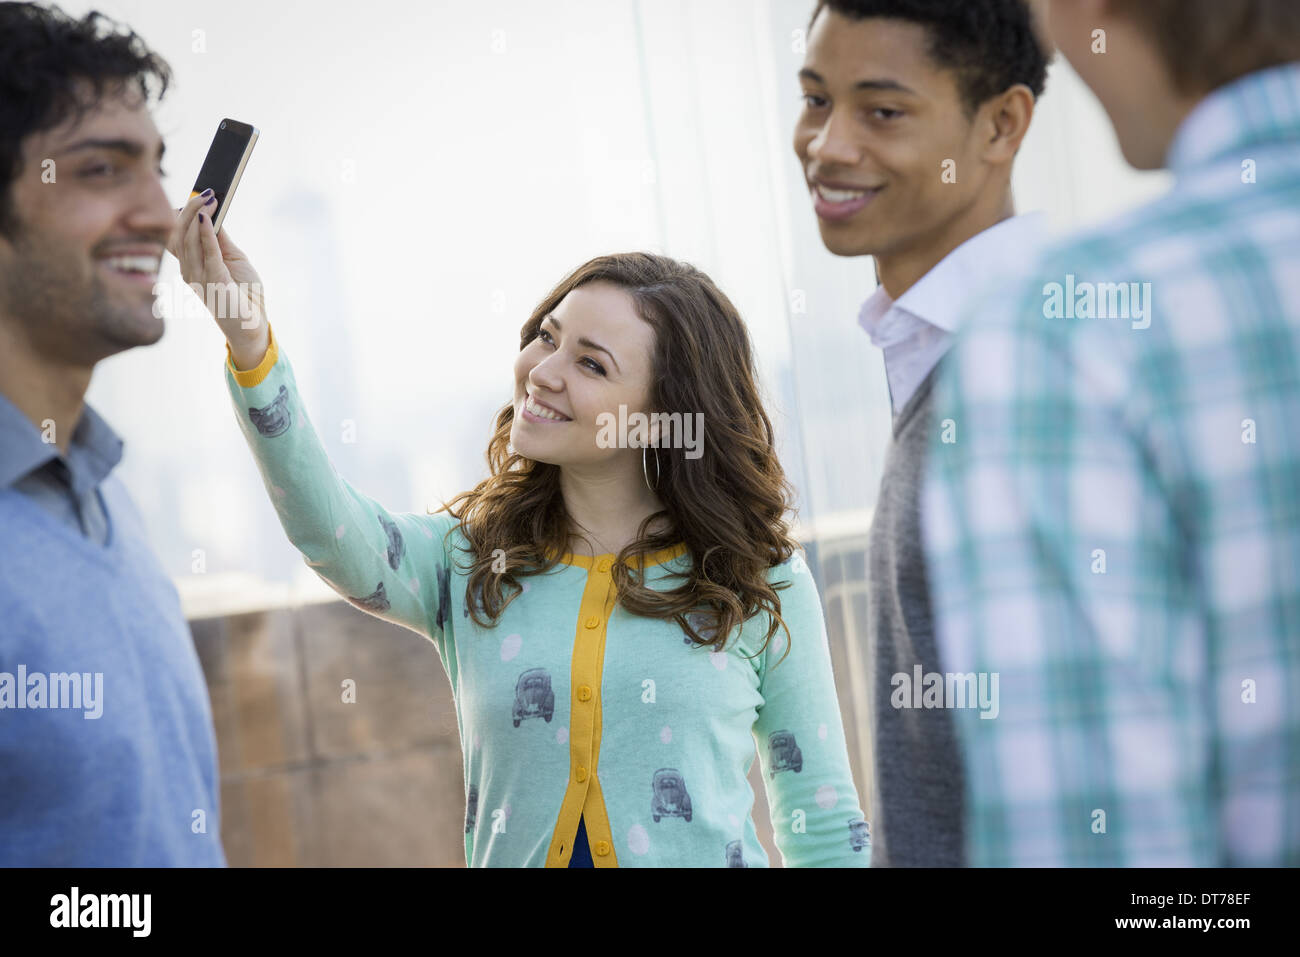 New York City. An observation deck Empire State Building. A woman using a smart phone to take an image. Three young men. - Stock Image